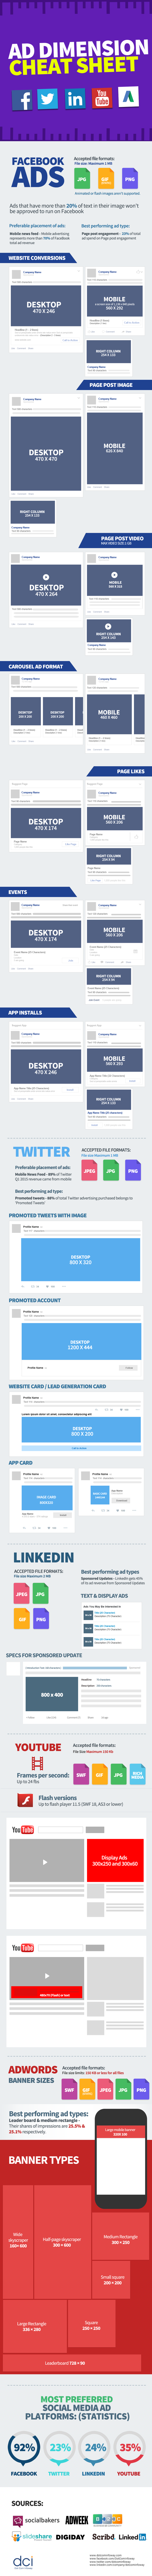 Social-Ads-Sizes